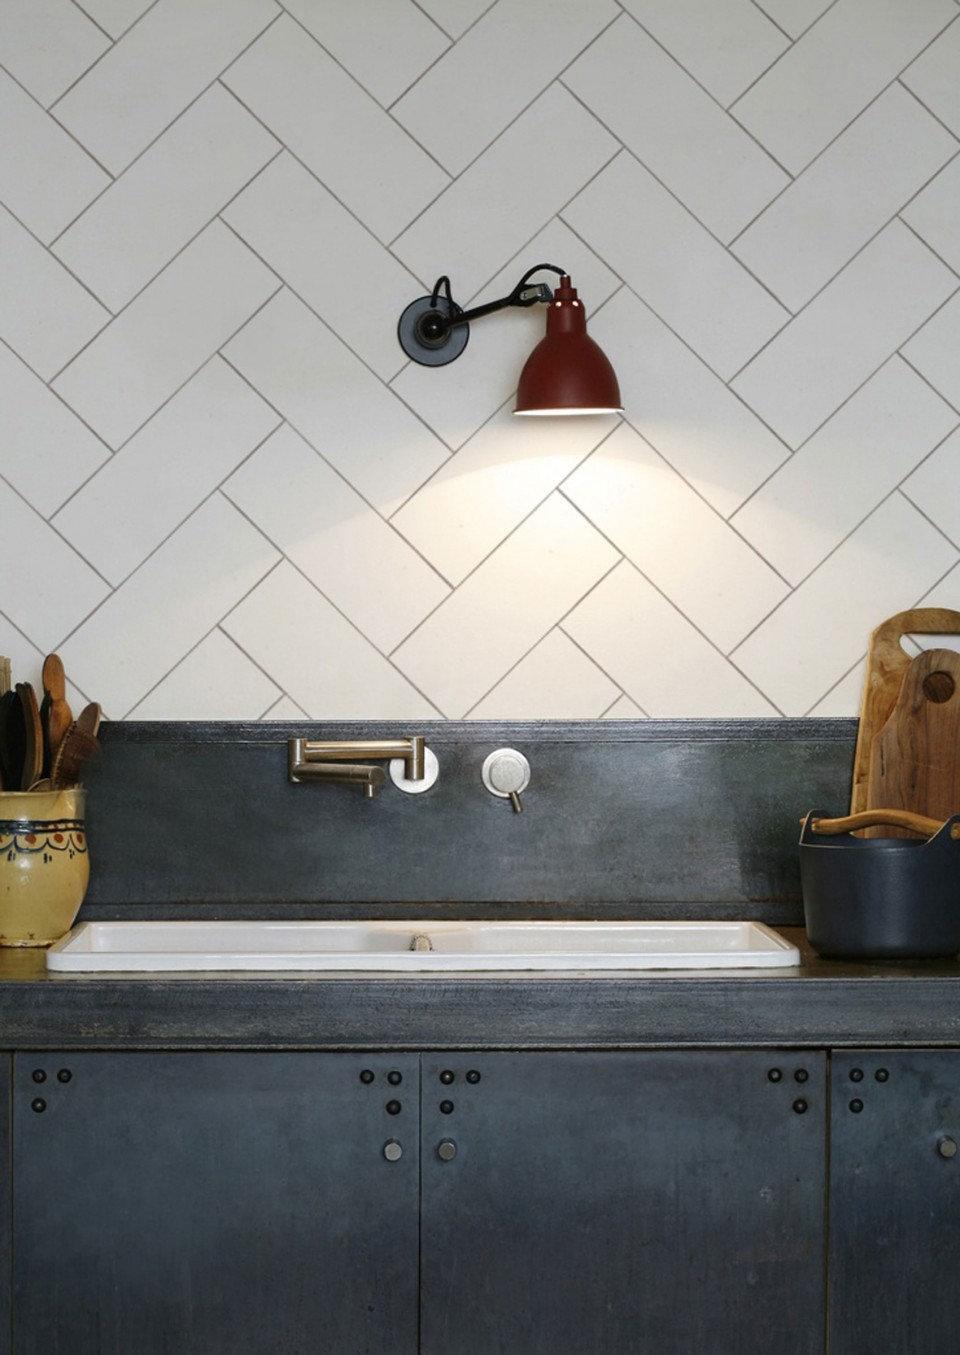 Get the look of herringbone tiles in your kitchen without the cost